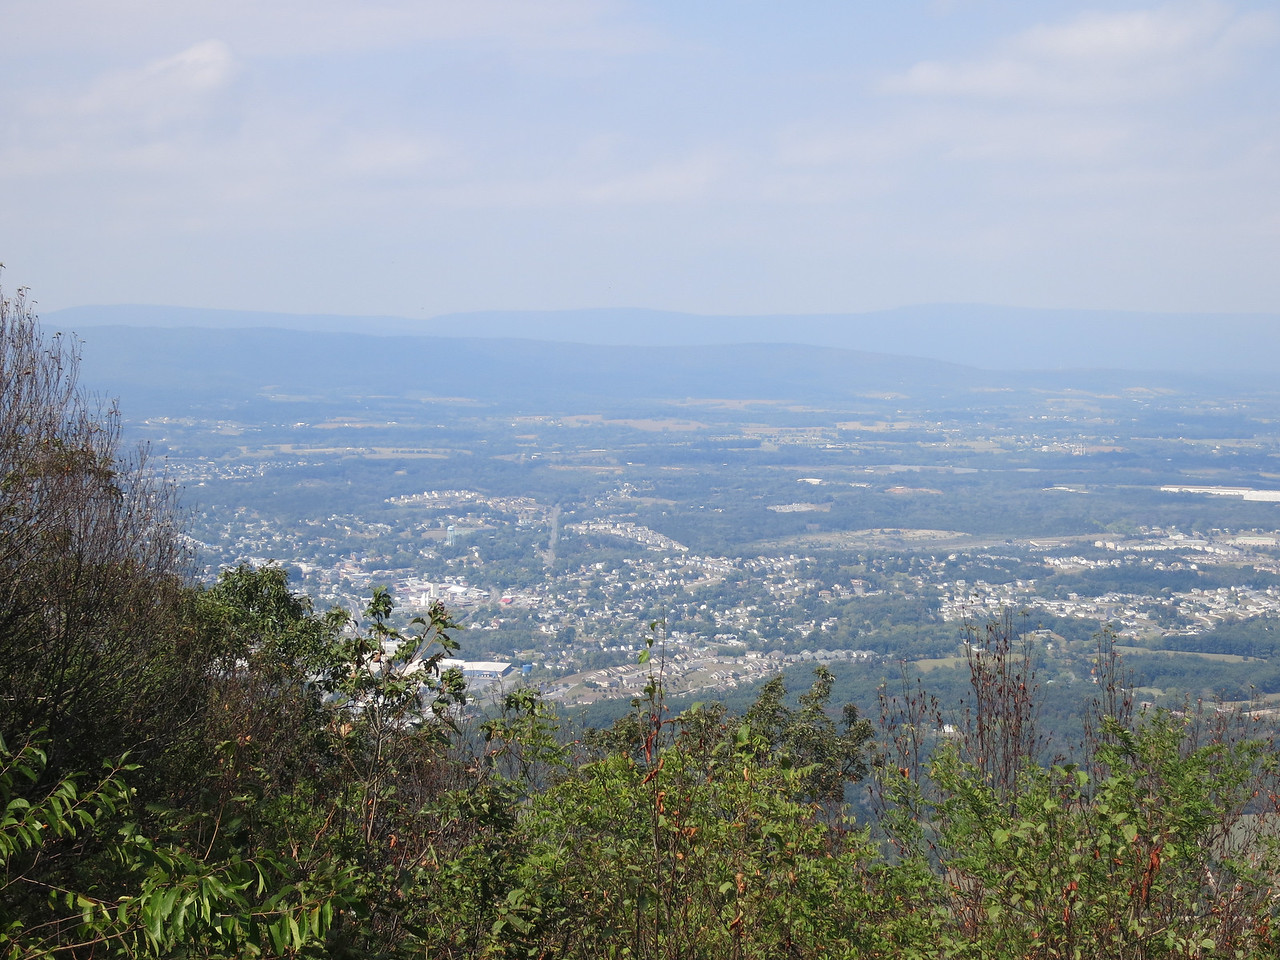 Signal Knob, the northernmost point of Three Top Mountain, overlooks Strasburg and is 2110 ft. above sea level. During the Civil War, both sides used it as a signal station, but the Confederate signal corps occupied it almost continuously from 1862 to 1864.